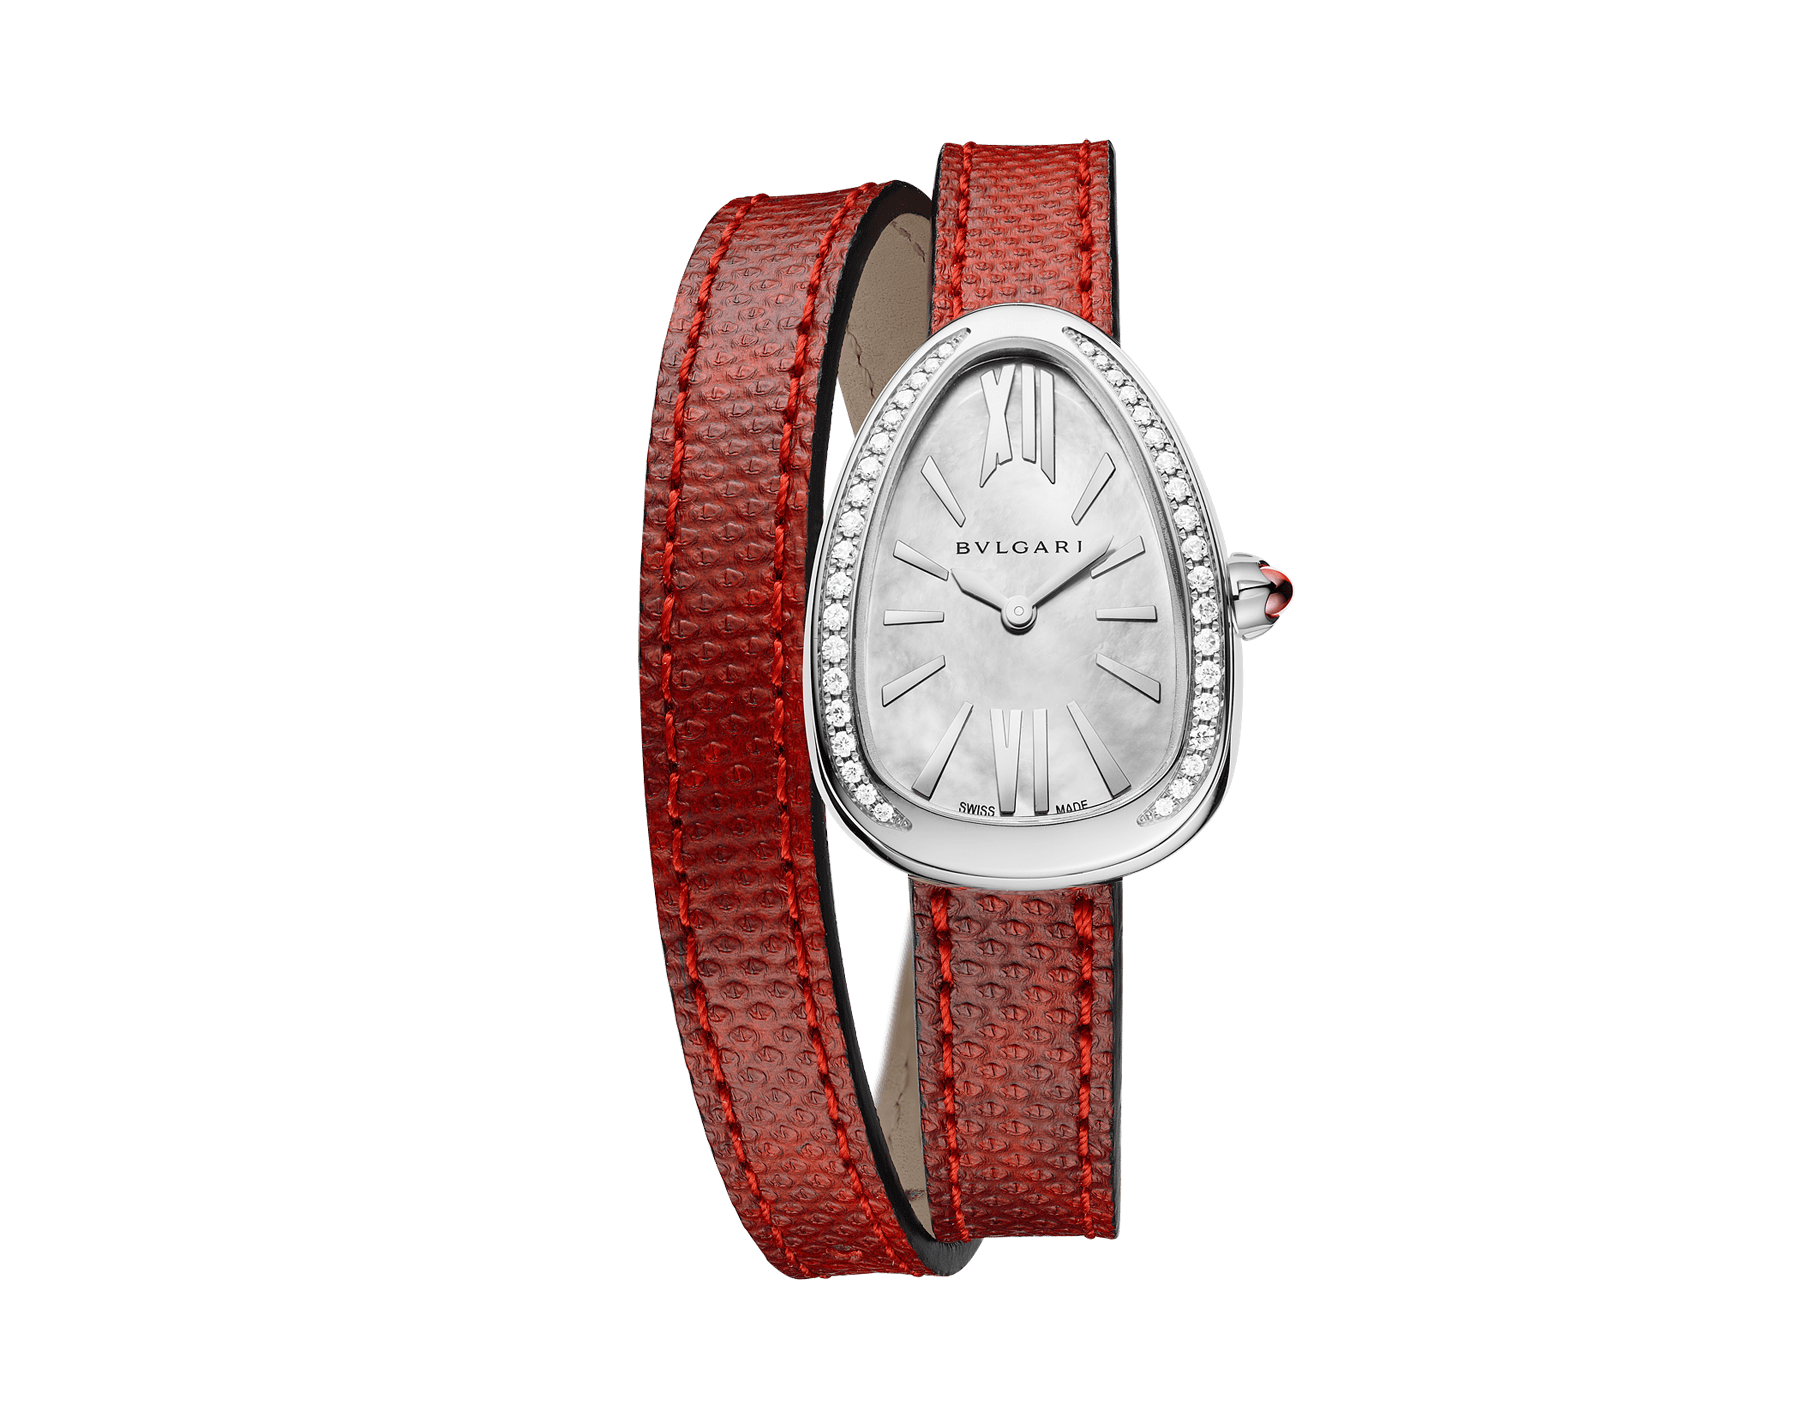 Serpenti watch with stainless steel case set with round brilliant-cut diamonds, white mother-of-pearl dial and interchangeable double spiral bracelet in red karung leather 102920 image 1